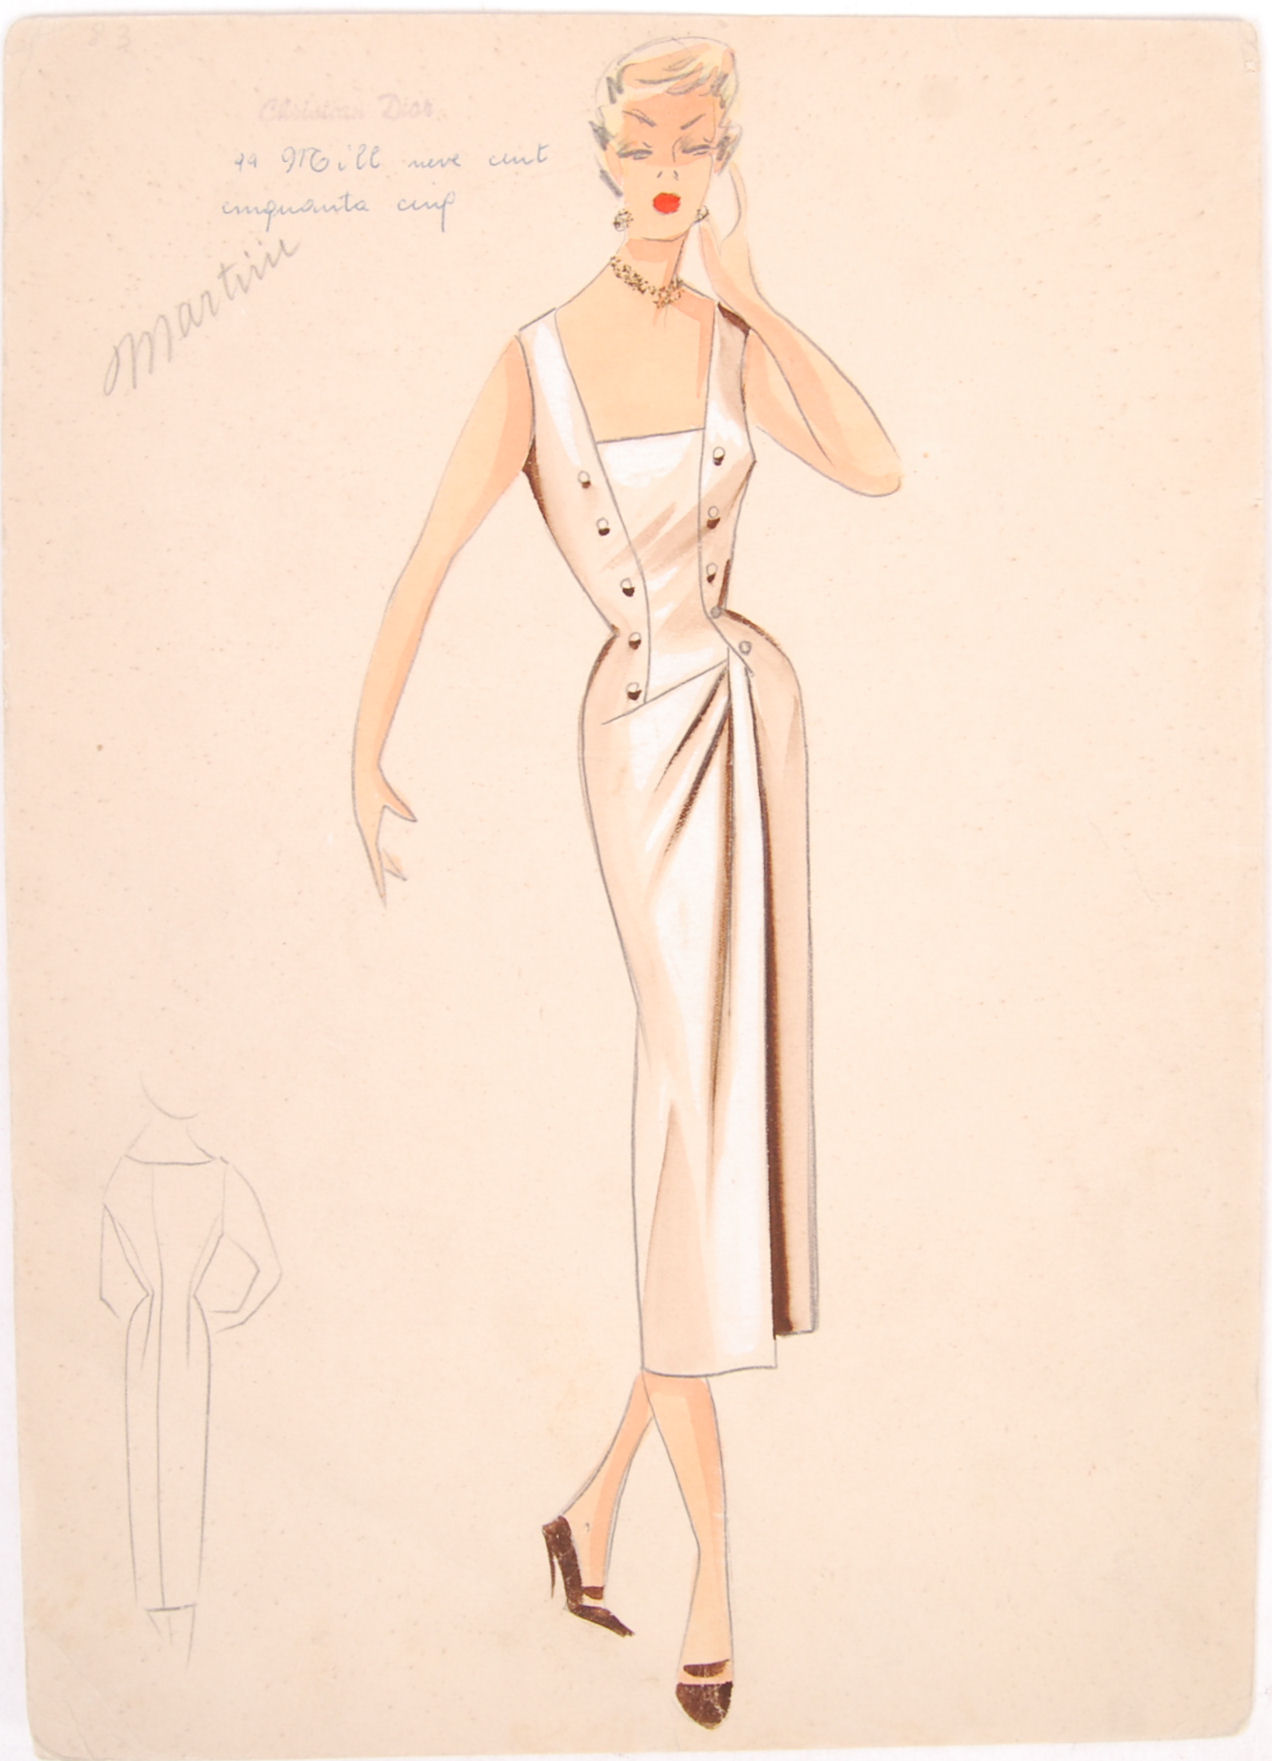 Lot 4 - CHRISTIAN DIOR MID 20TH CENTURY FASHION DESIGN PENCIL & INK SKETCH